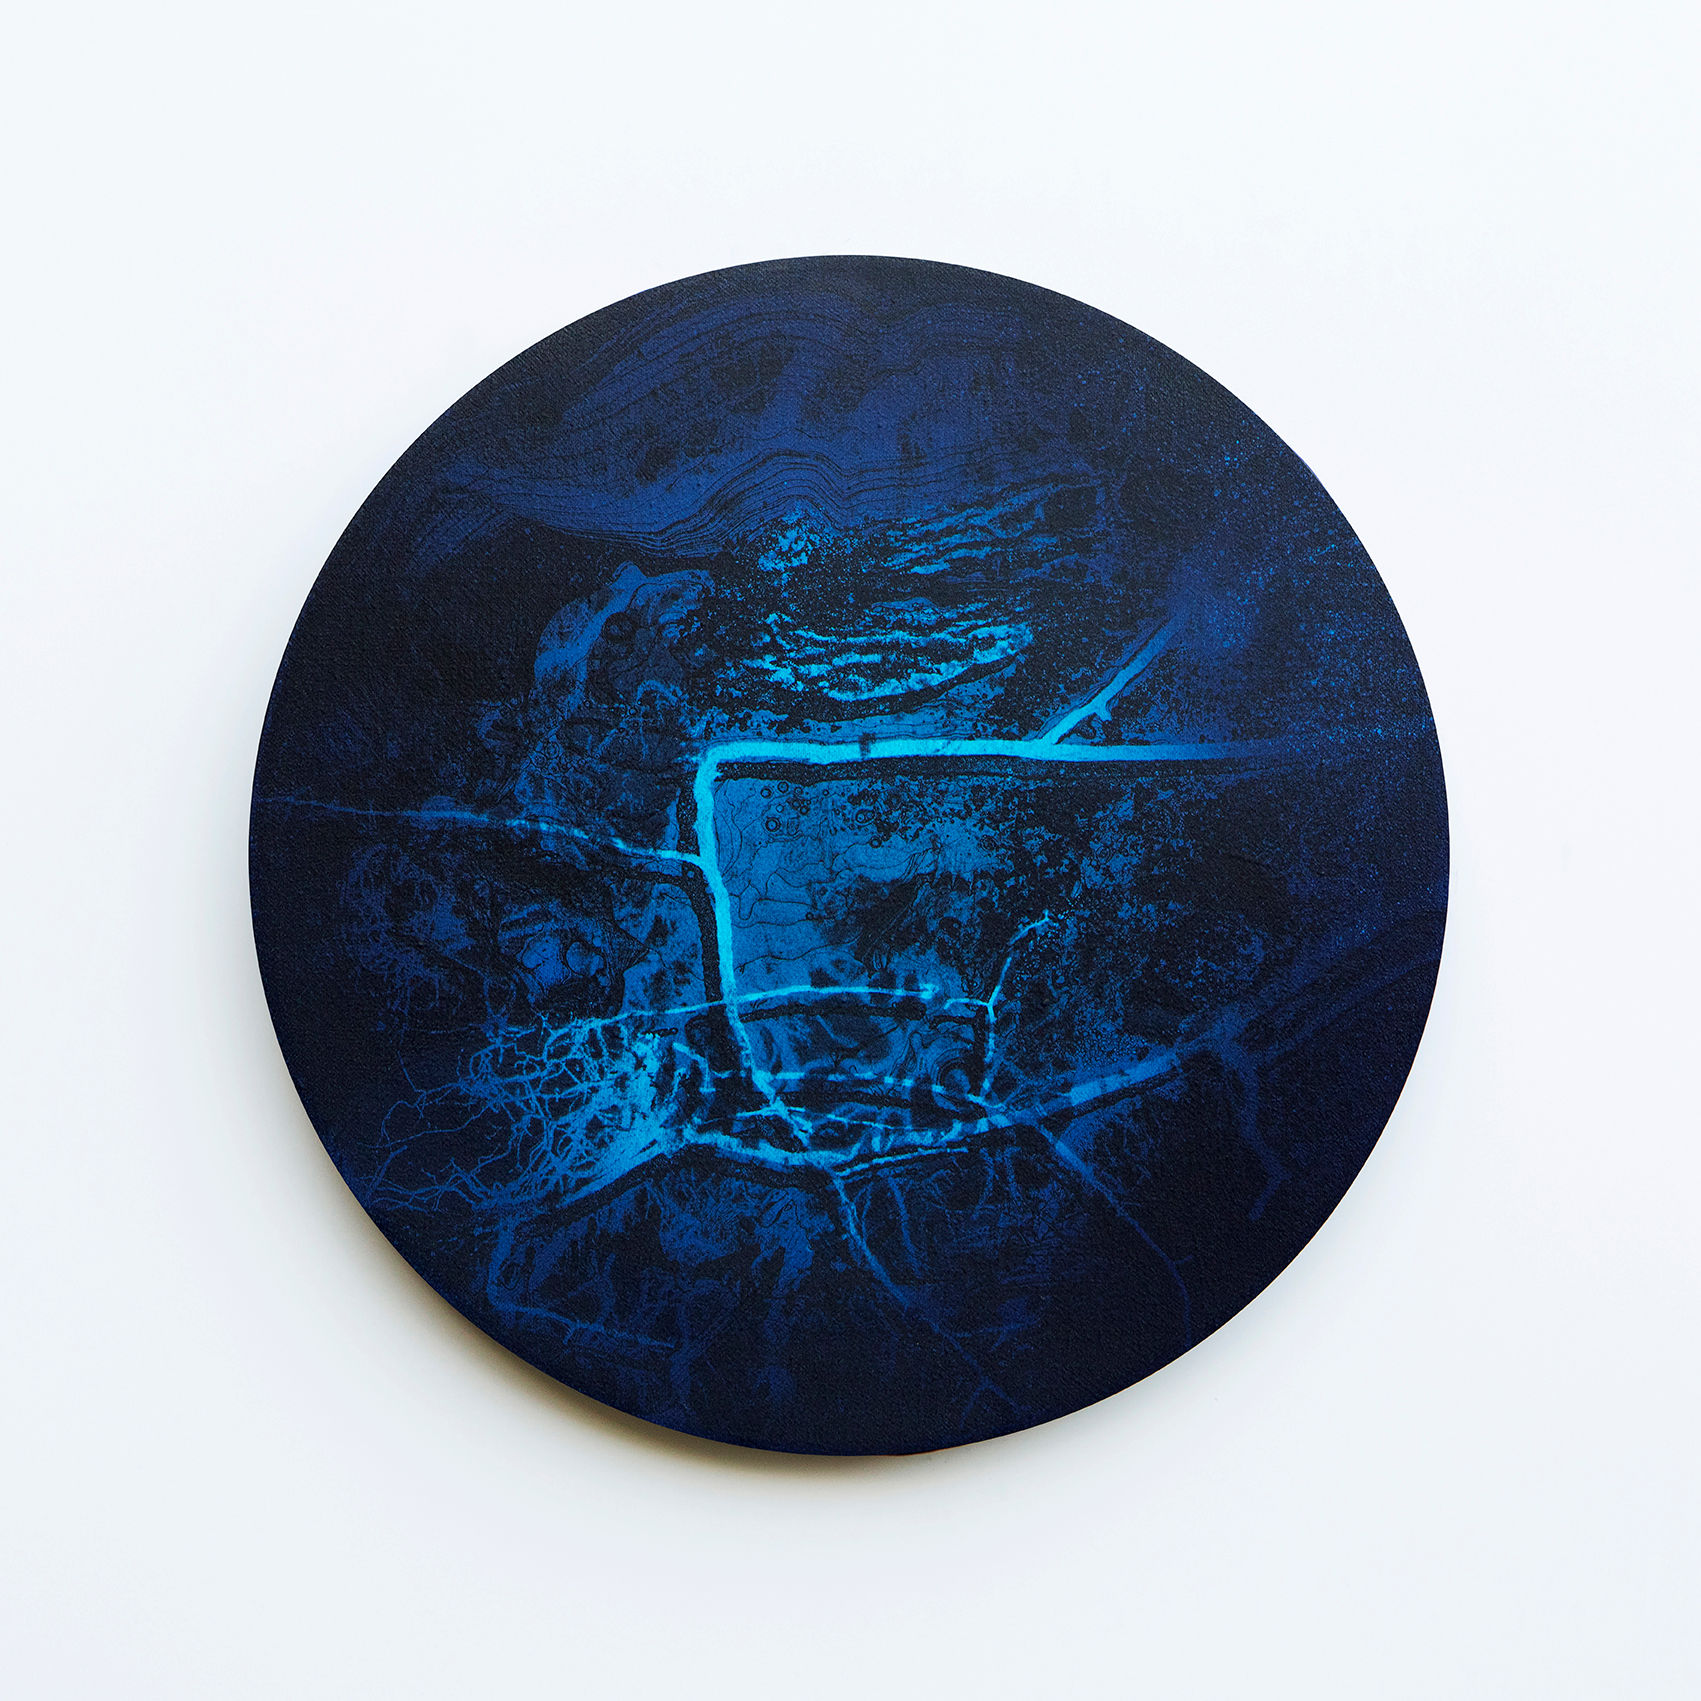 WATERSCAPE_내 안의 바깥 05, Diameter 40cm, Traditional pigment, water-print, water-drawing on canvas, 2018